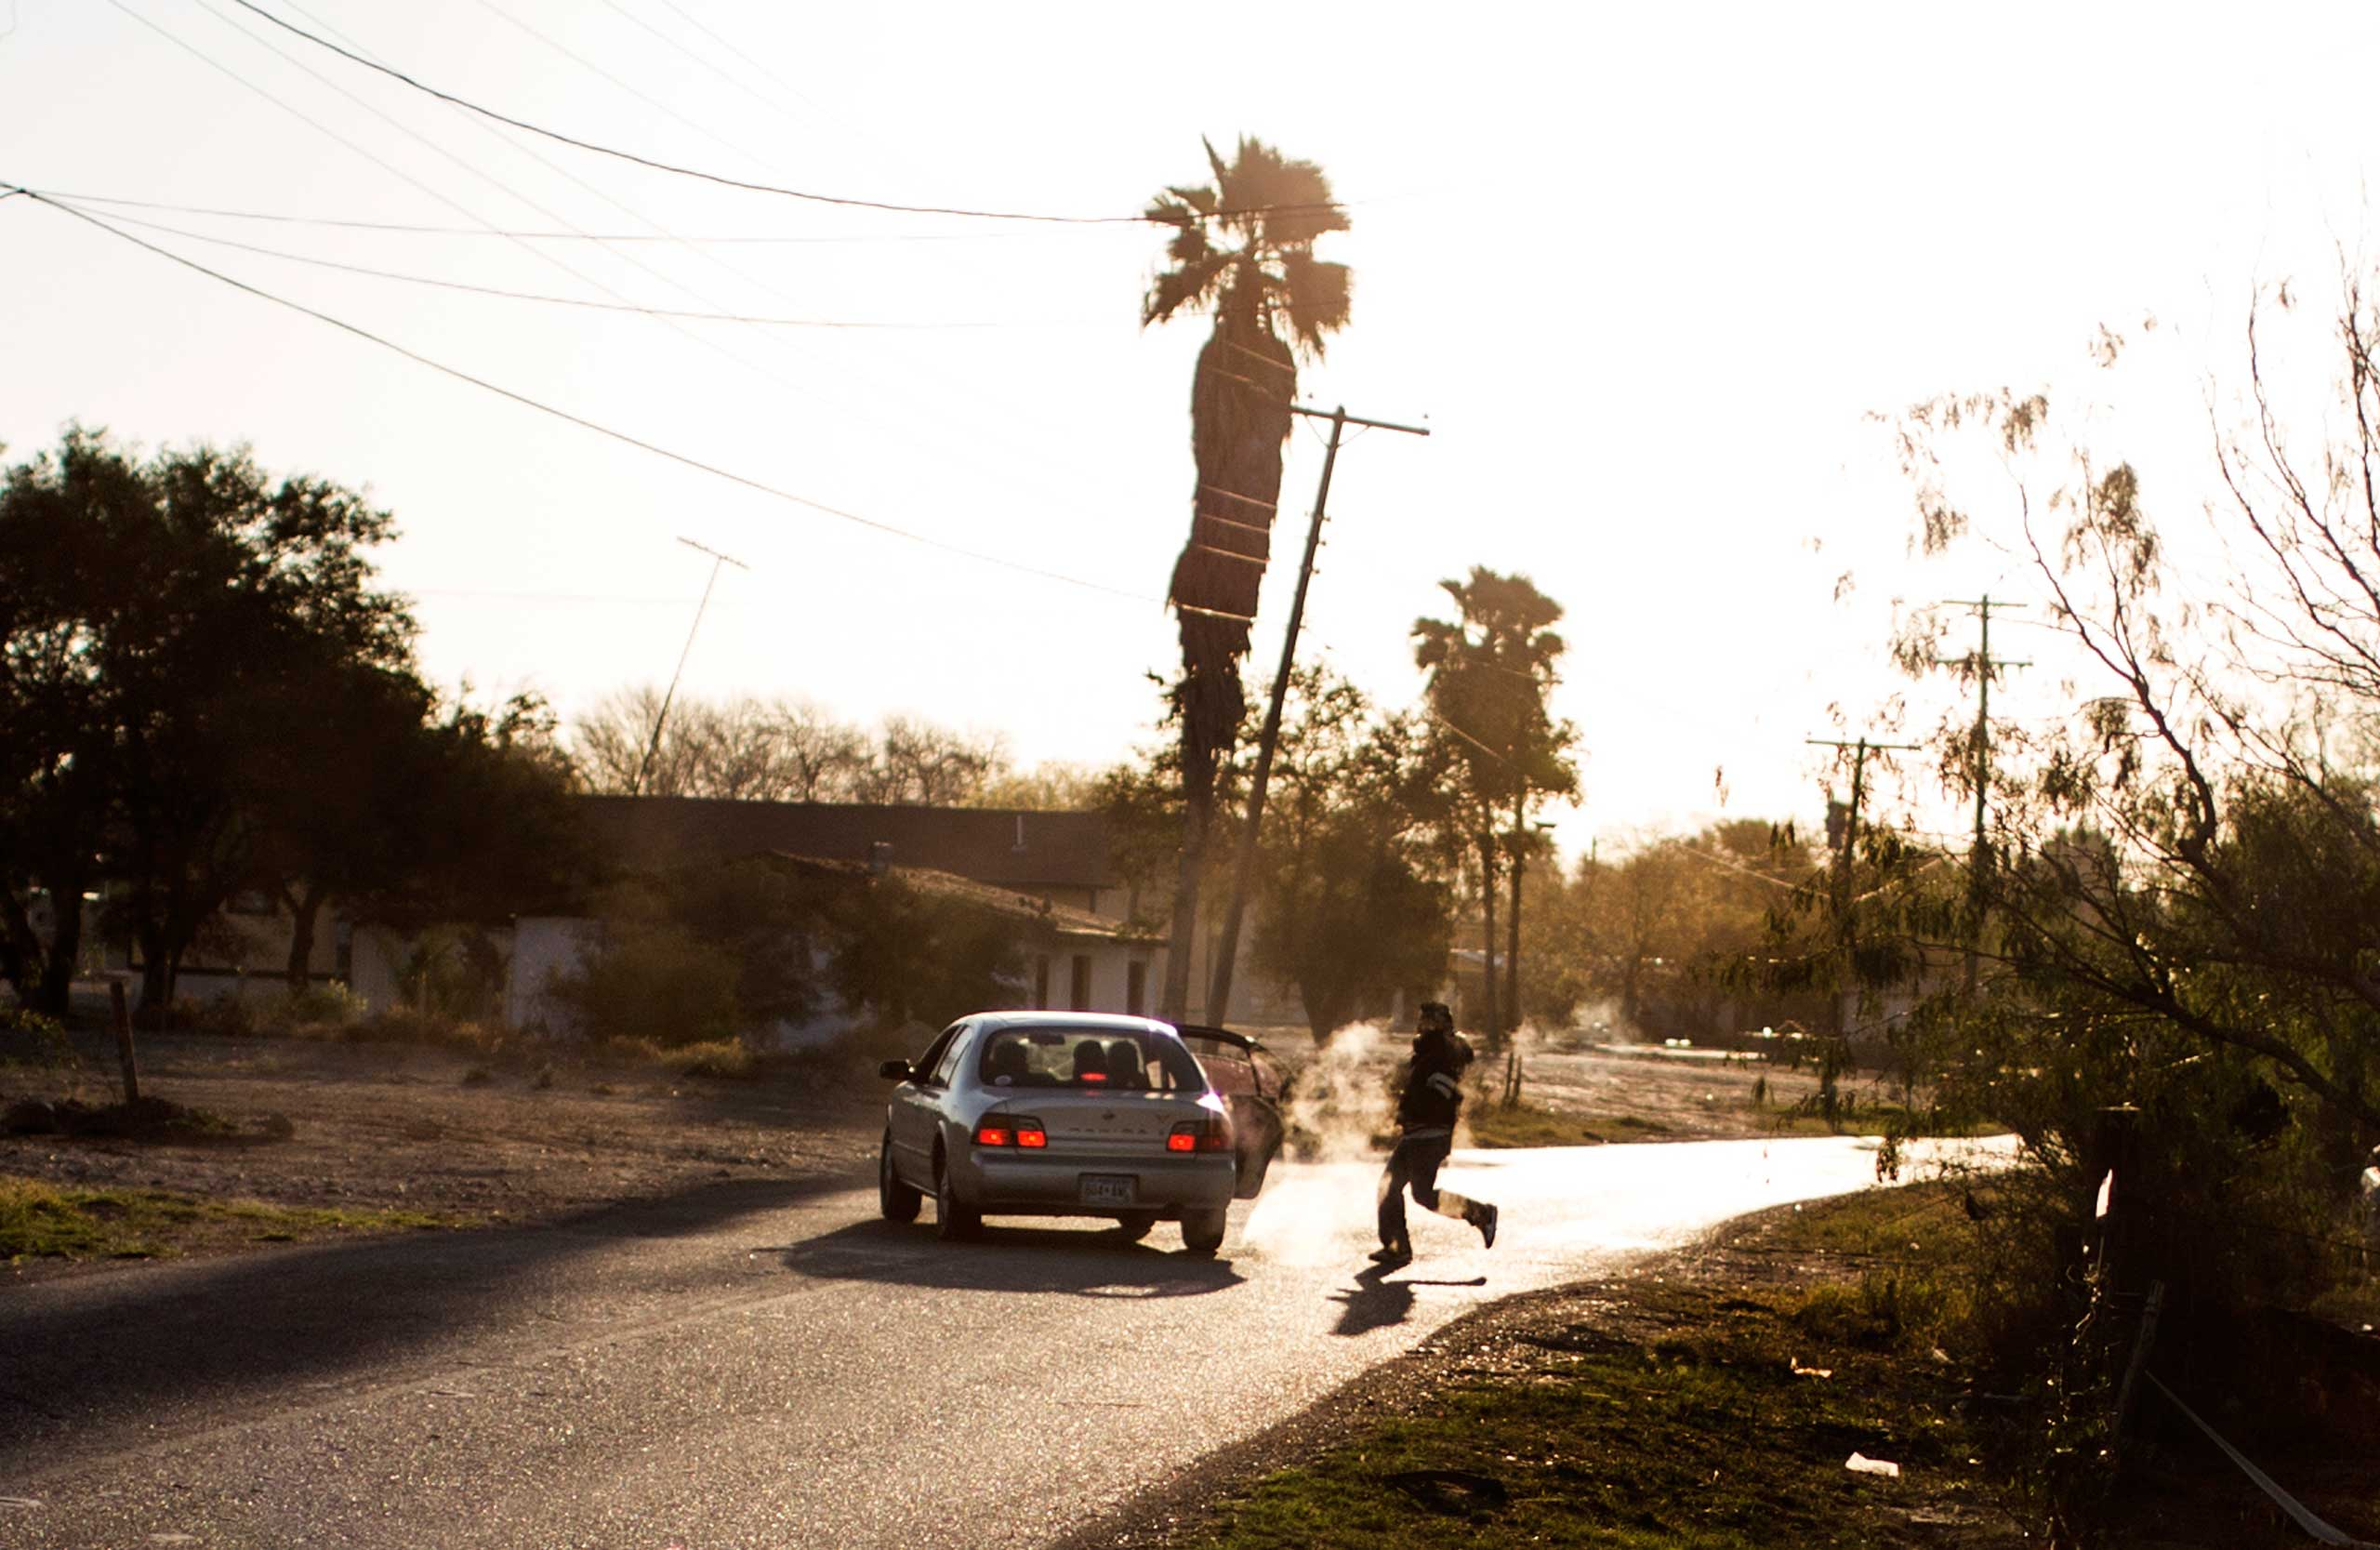 Migrants run from a gap in the border fence to a waiting car in the early morning in Penitas, Texas, Feb. 14, 2013.